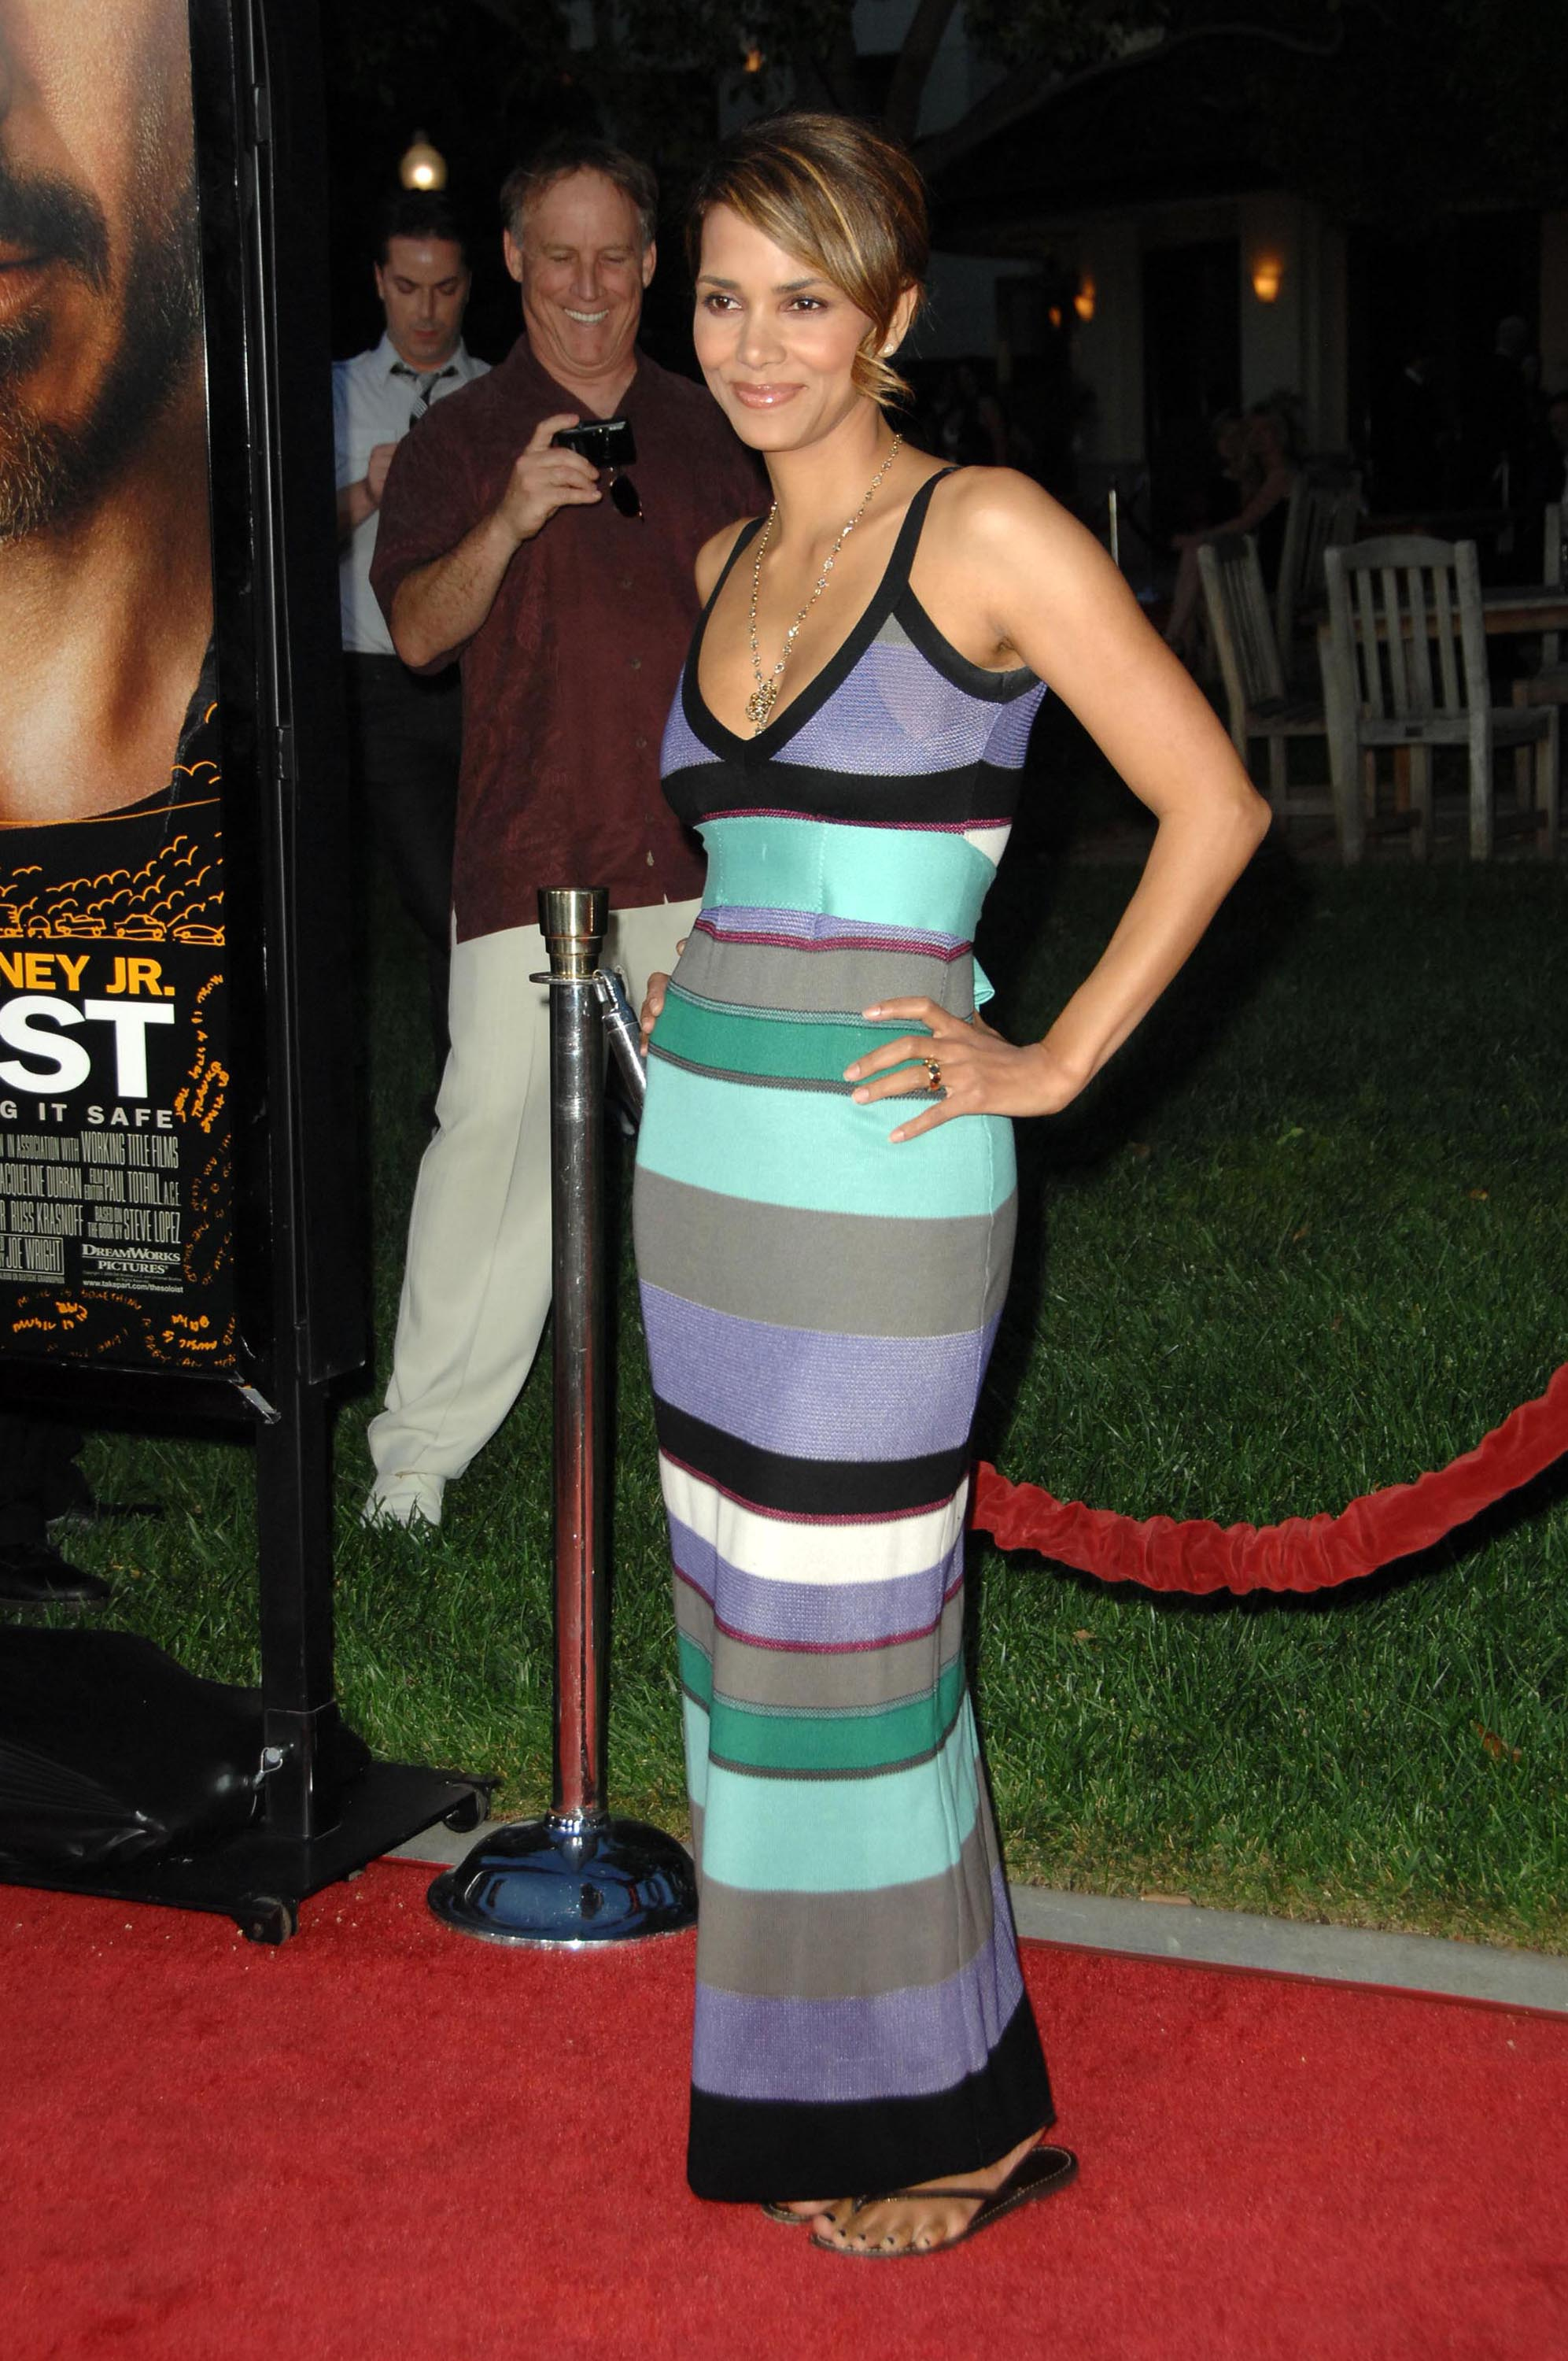 65557_Halle_Berry_The_Soloist_premiere_in_Los_Angeles_66_122_518lo.jpg